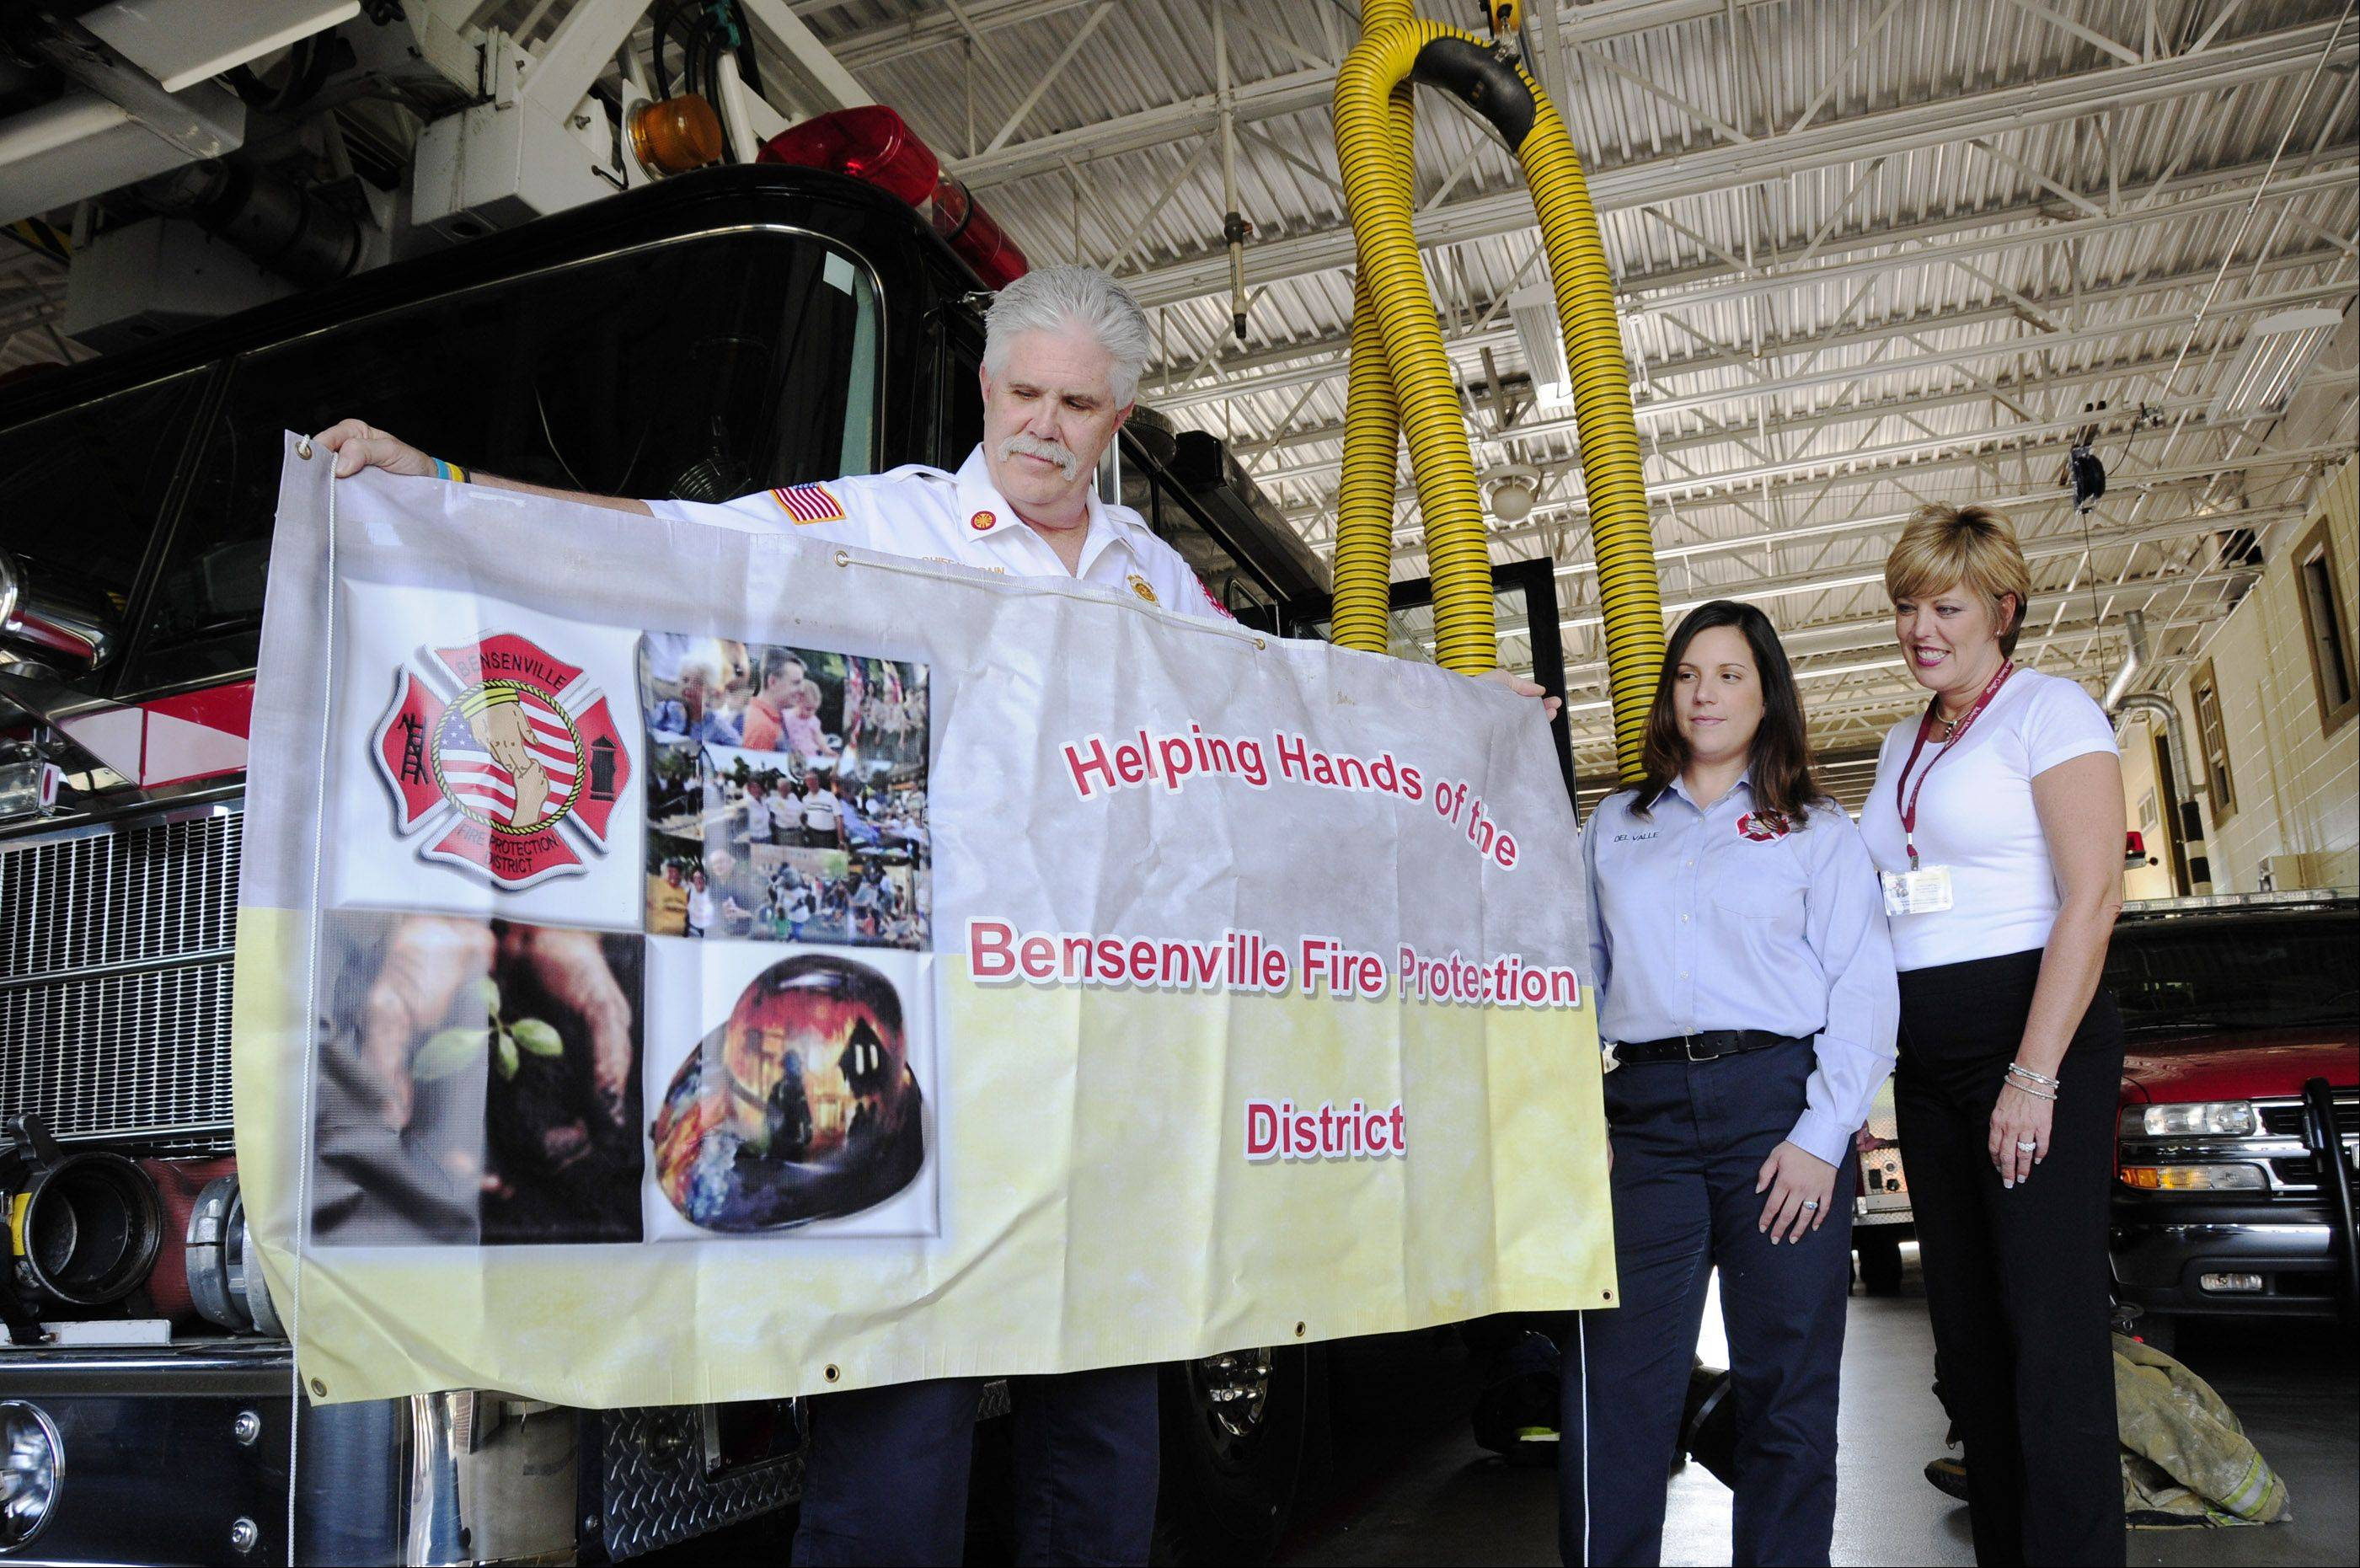 Bensenville Fire Chief Mike Spain displays the department�s Helping Hands banner along with the group�s Executive Director Liz Delvalle and President Denise Gallagher. Helping Hands is a volunteer organization that aims to help fire victims with food, clothing and comfort.